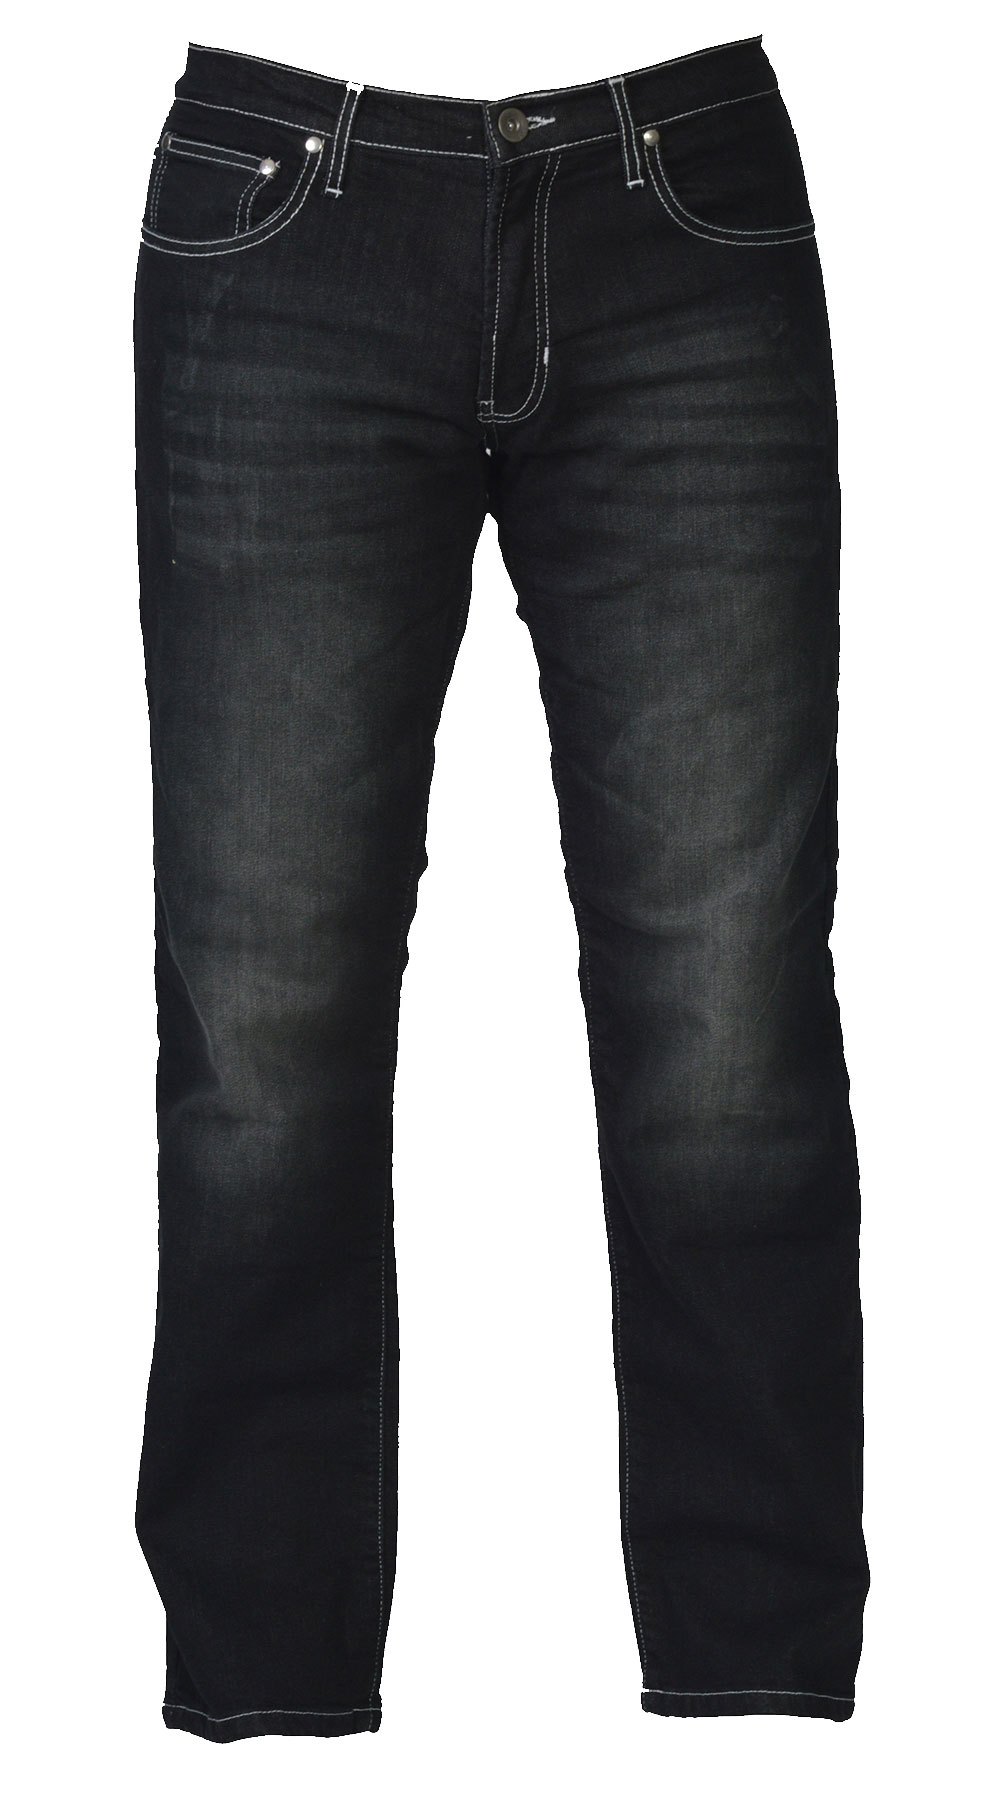 MENS JEANS : BLACK BIRD